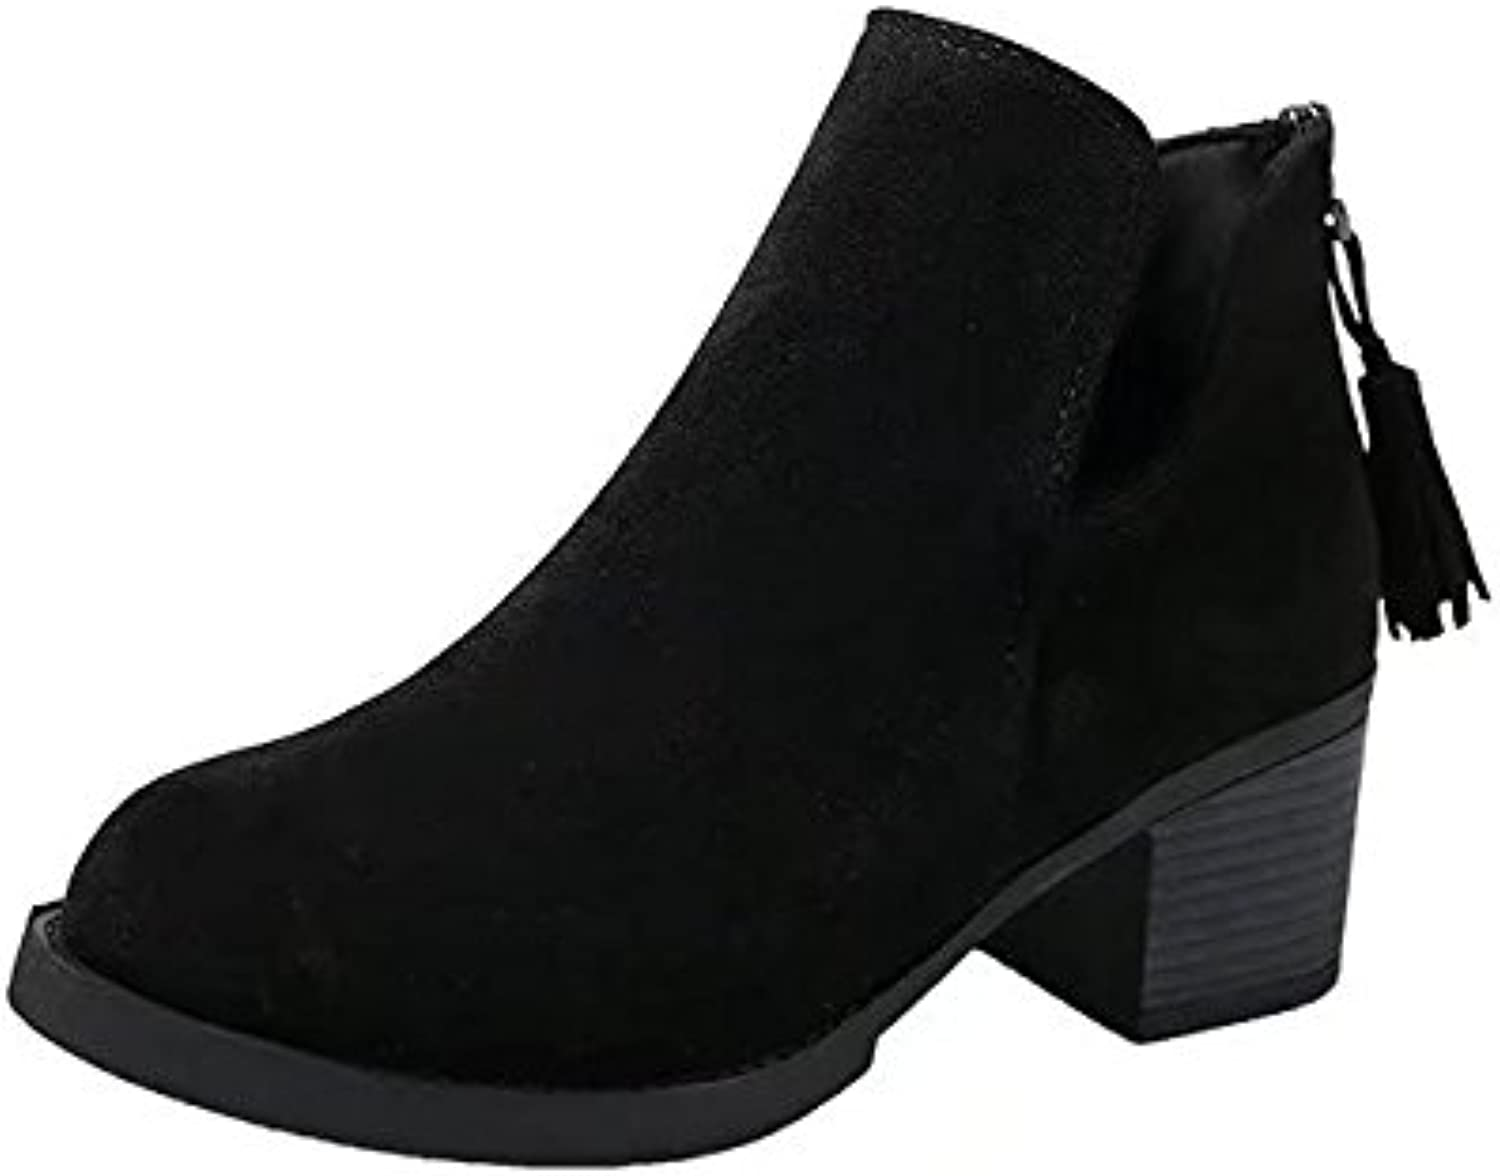 WYMBS Women's Rough With Martin Boots Autumn Winter Tassel Mid Heel shoes,Black,35